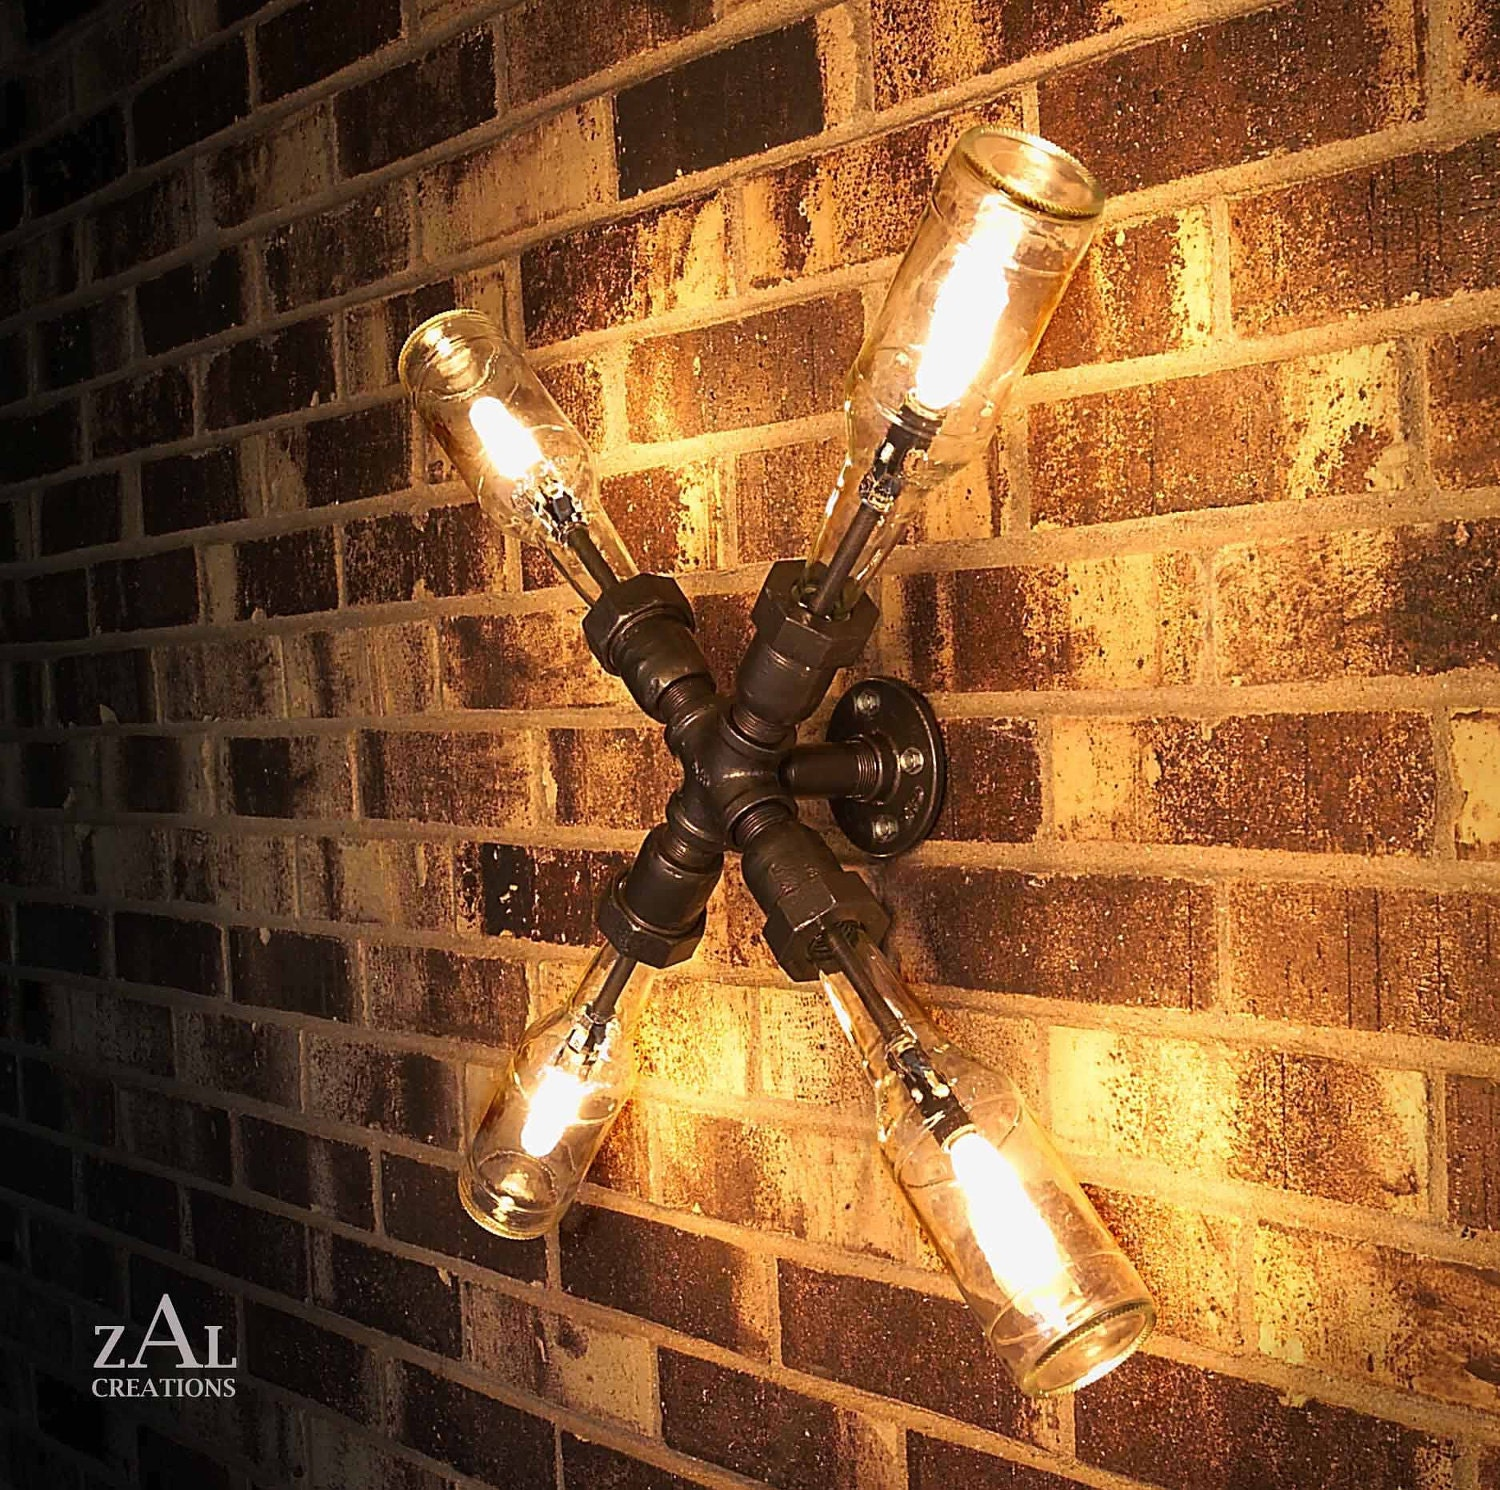 Wall Light Lamp Beer Bottles Plumbing Pipe Fittings